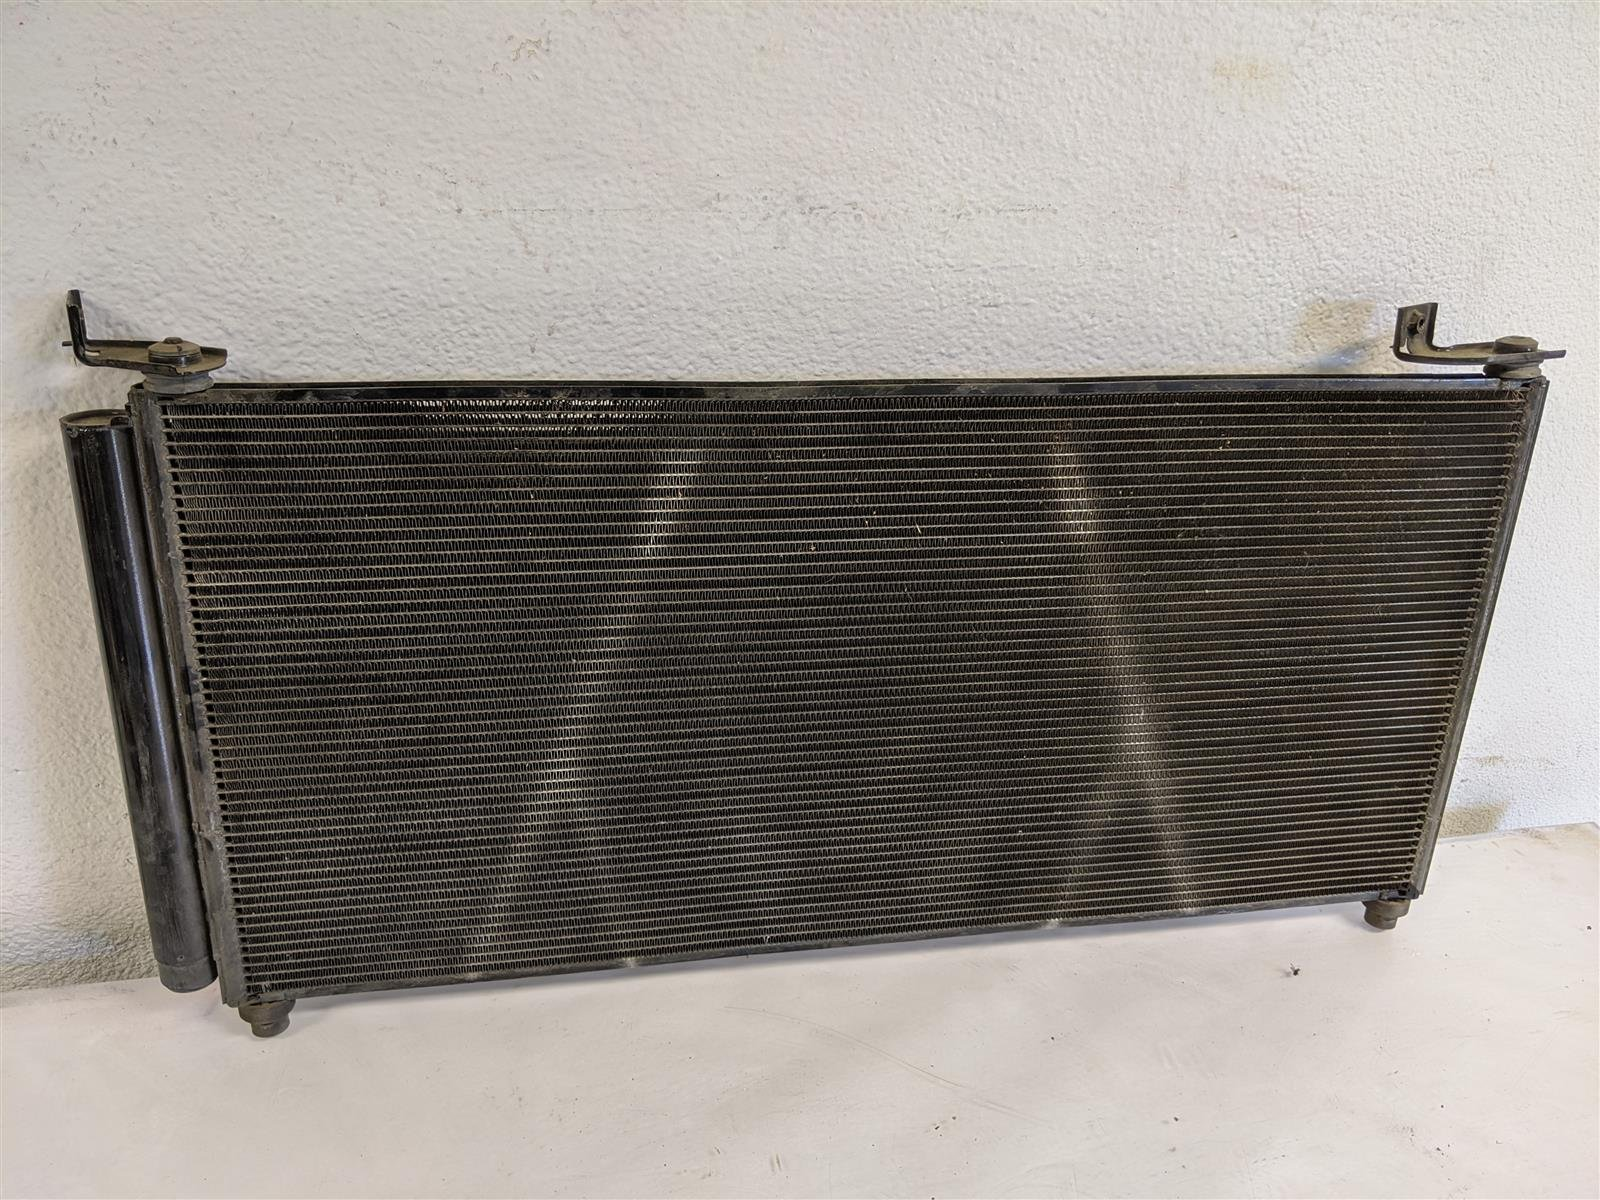 2015 Acura TLX Ac Condenser Replacement